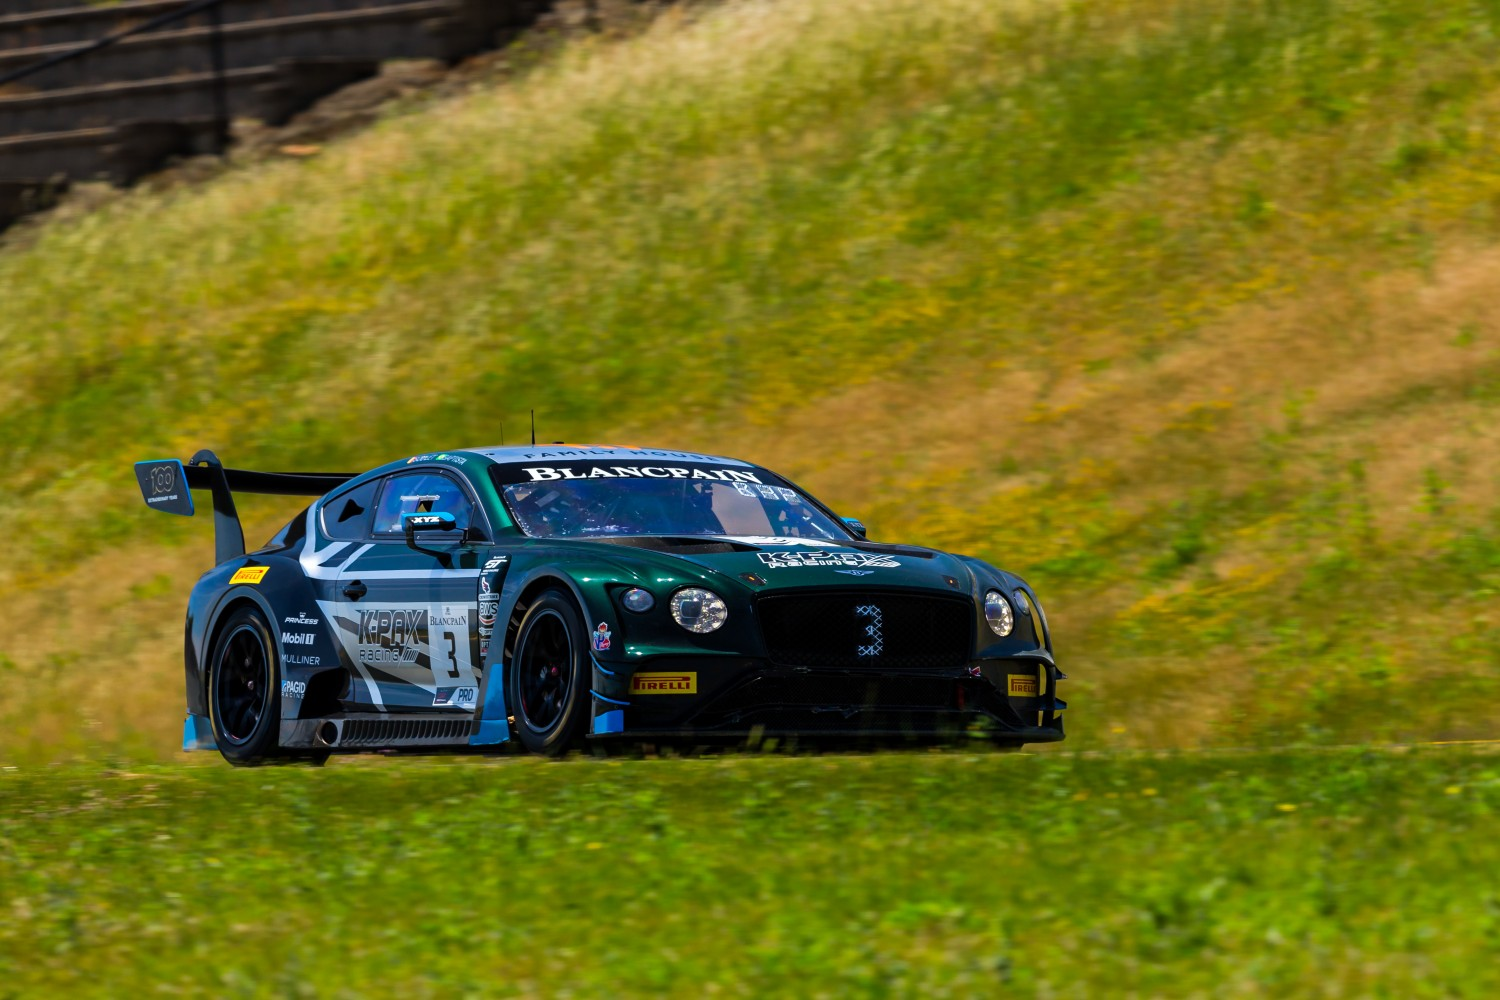 #3 Bentley Continental GT3 of Rodrigo Baptista and Maxime Soulet   SRO at Sonoma Raceway, Sonoma CA | Fabian Lagunas/SRO